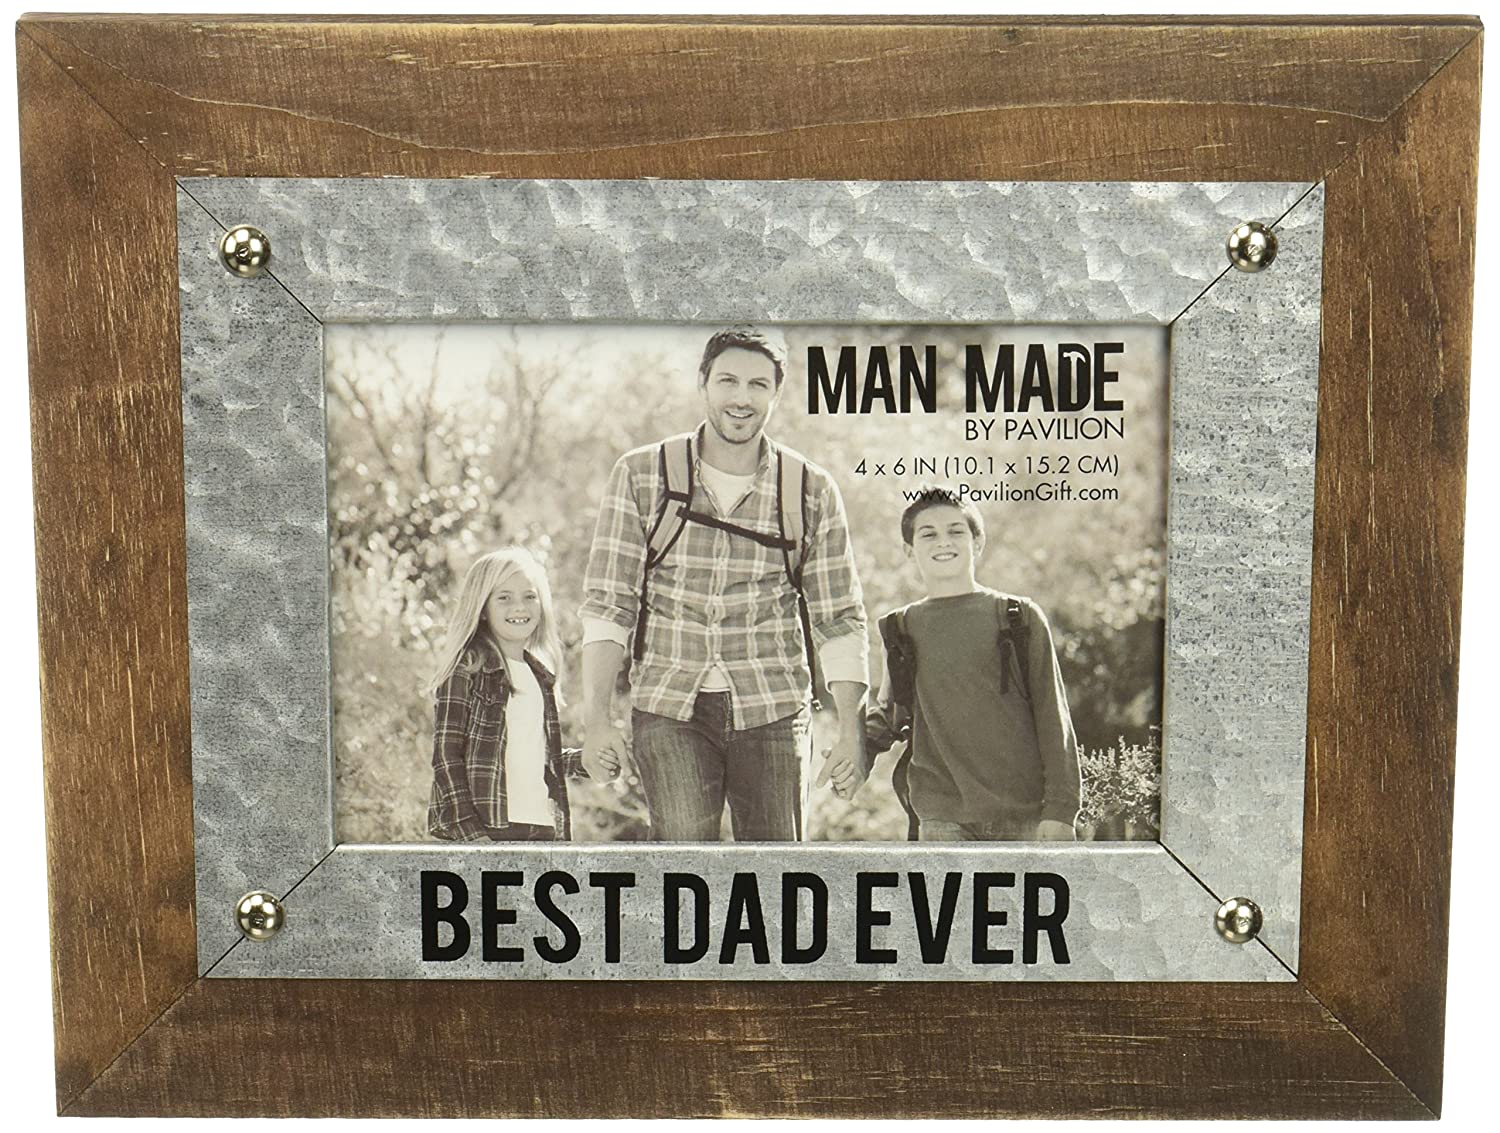 Pavilion - Best Dad Ever - Wood and Metal 4x6 Picture Frame Pavilion Gift Company 14273